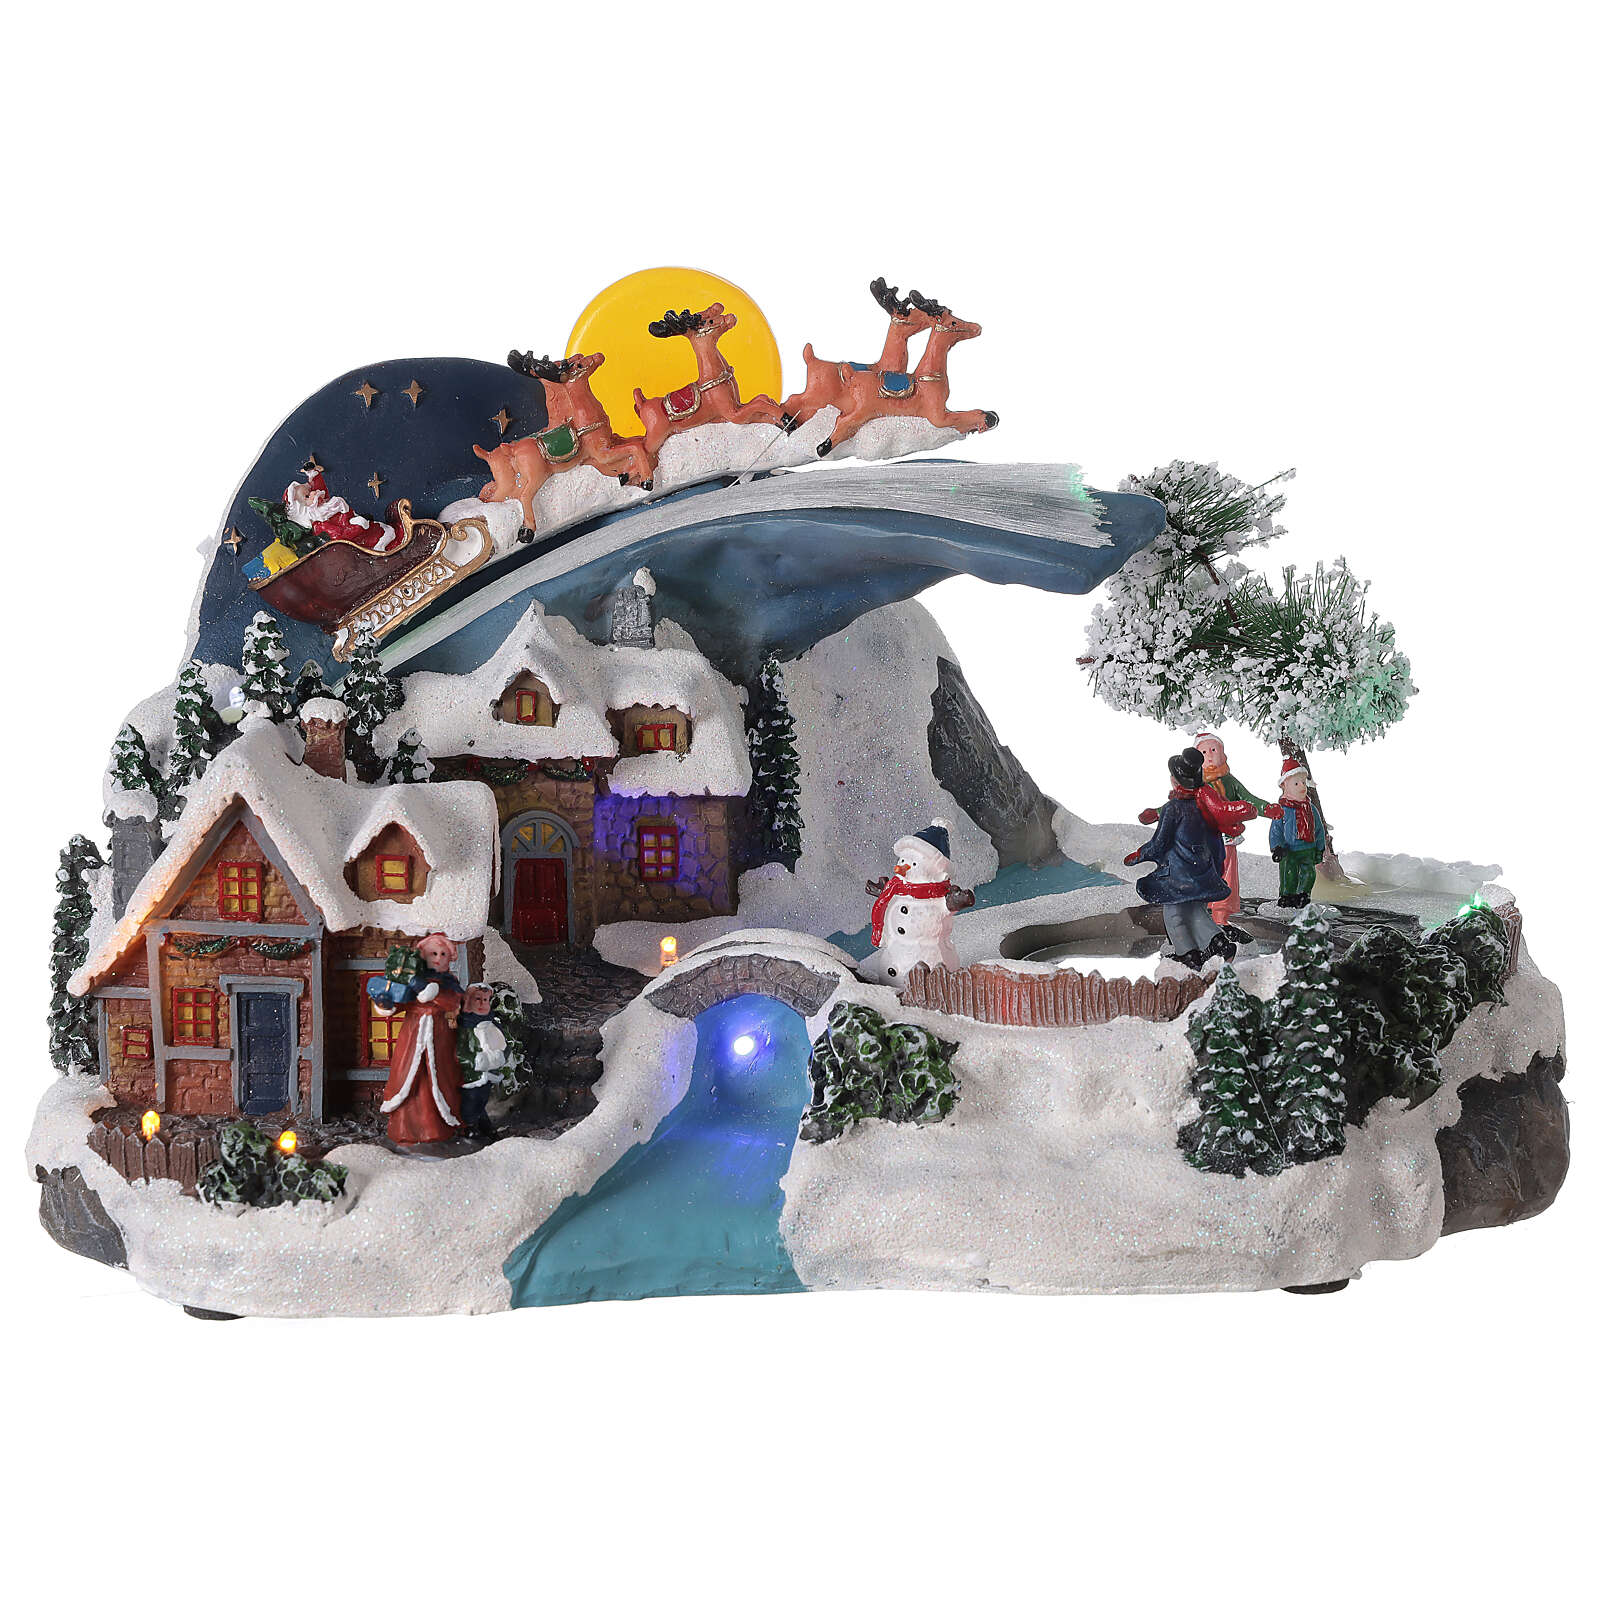 Christmas village sleigh Santa Claus moon LED music 20x35x20 cm 3